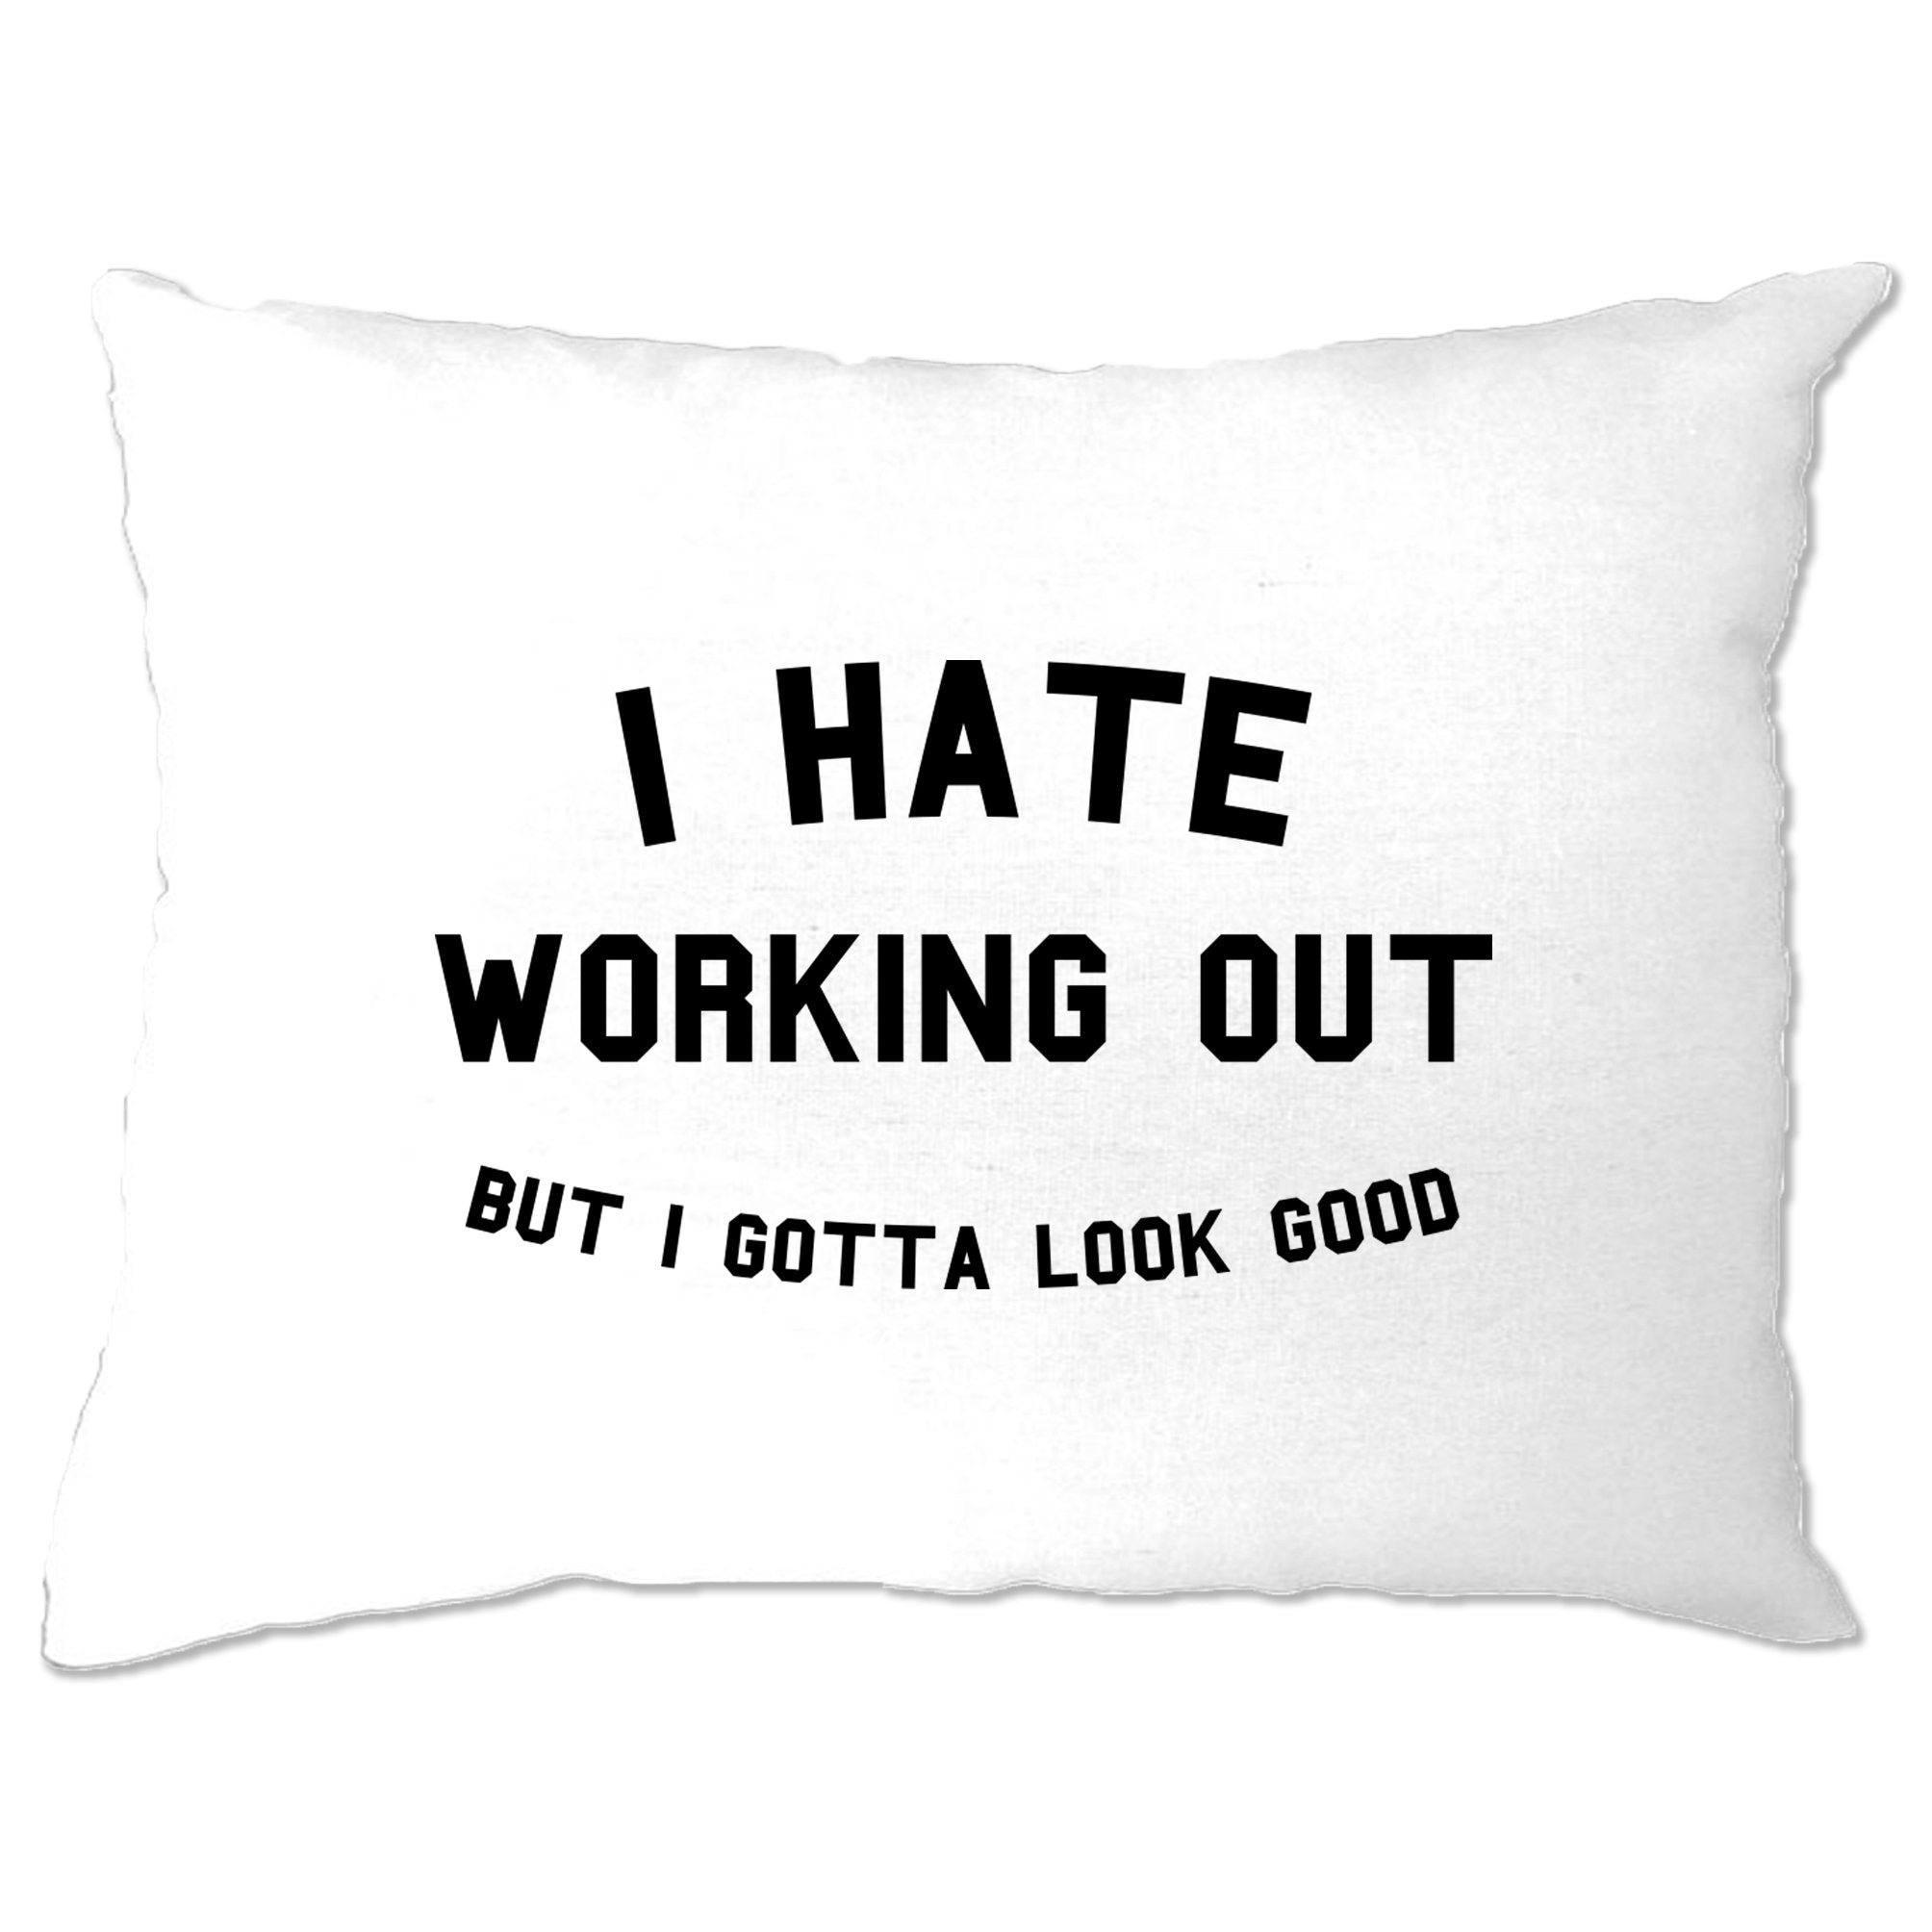 Gym Pillow Case I Hate Working Out, But Gotta Look Good